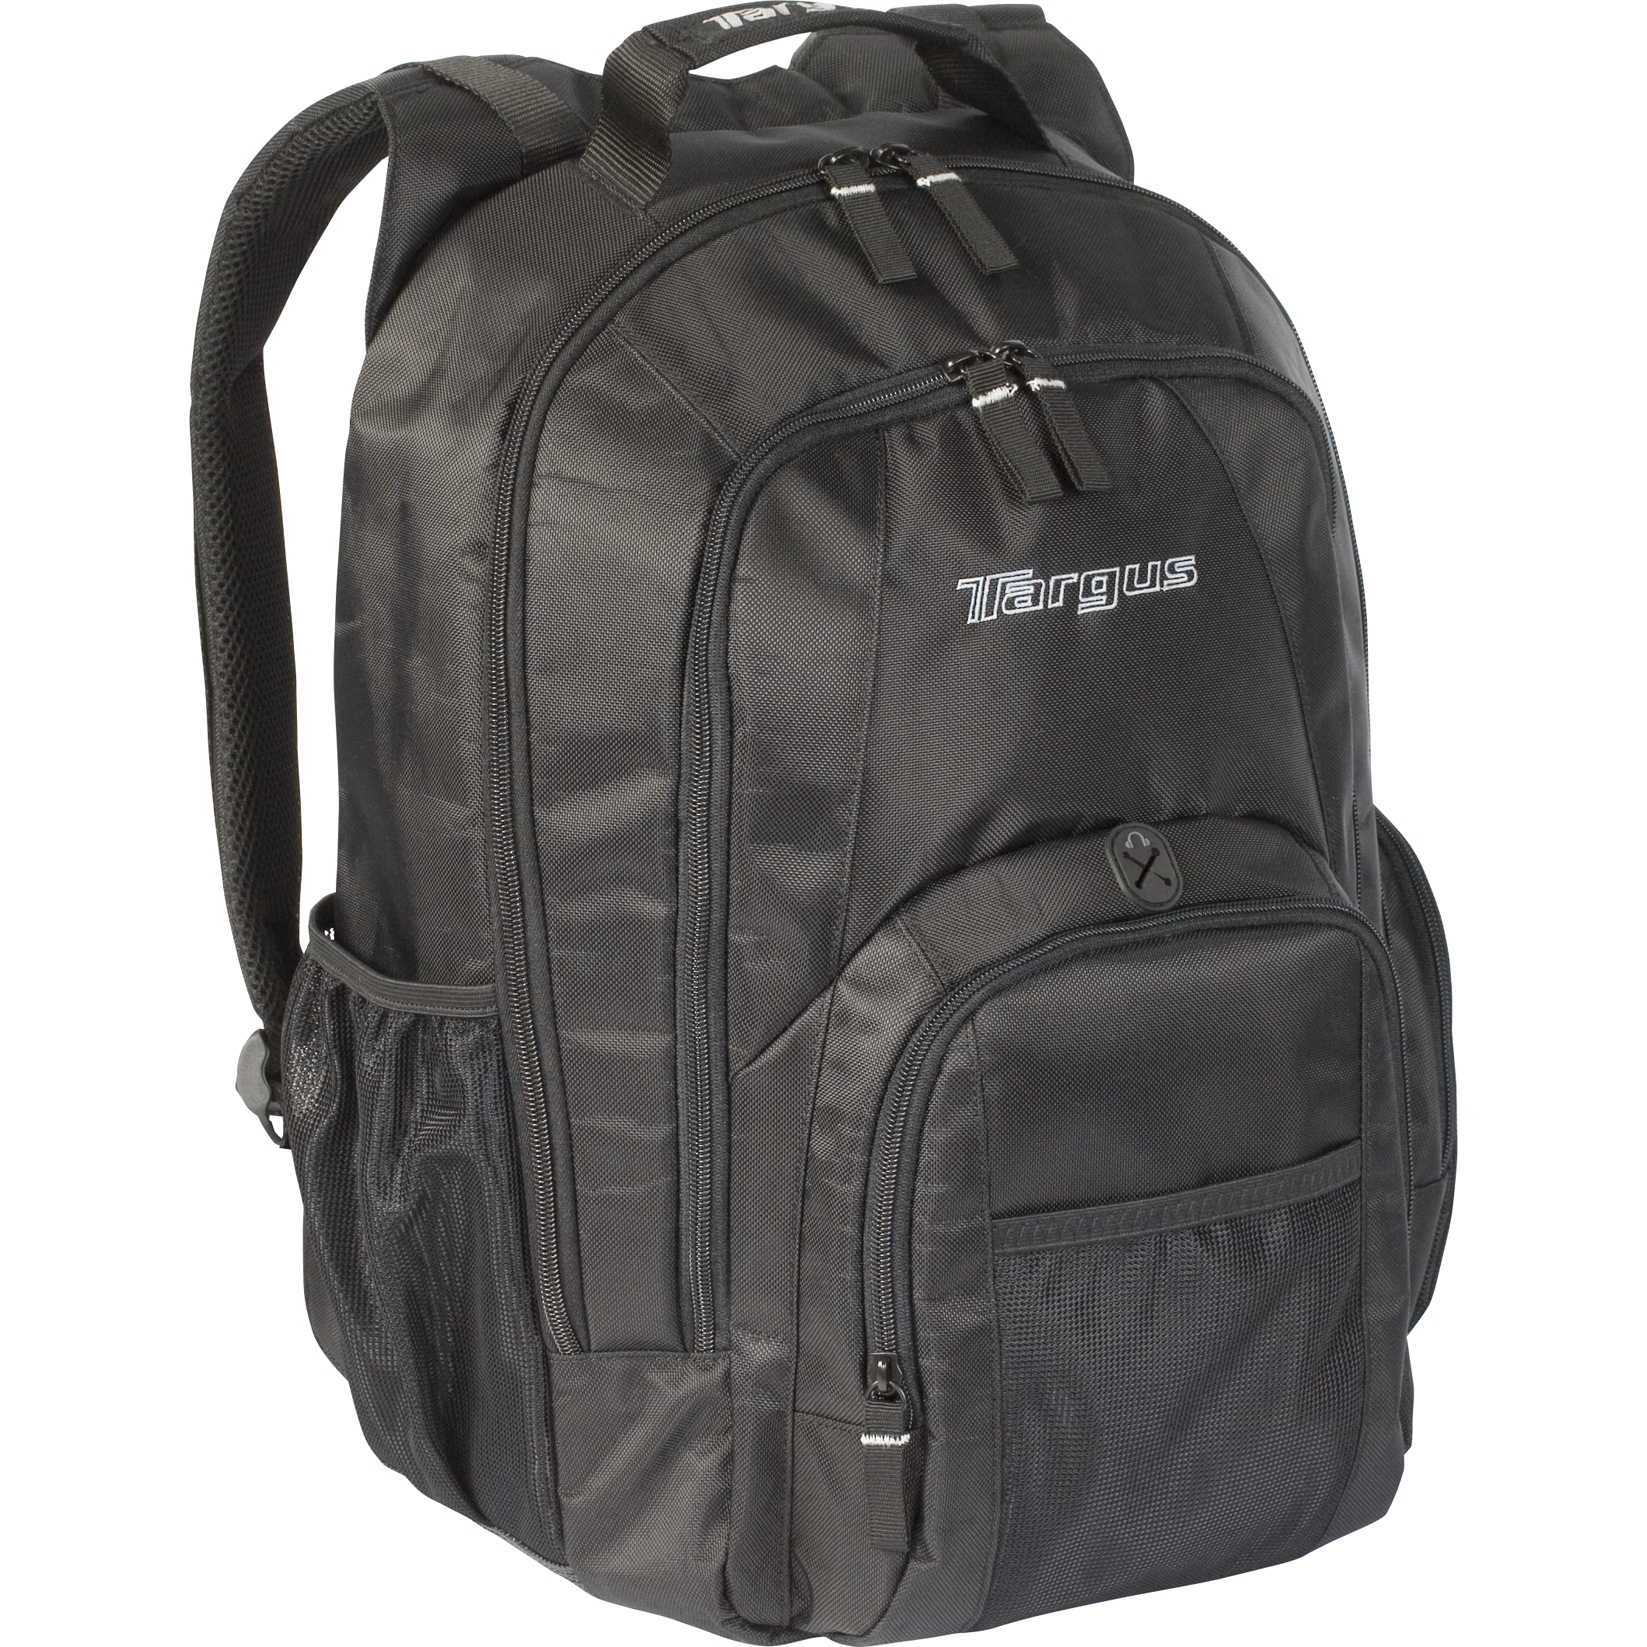 Targus Laptop Backpack ut8U9xjI